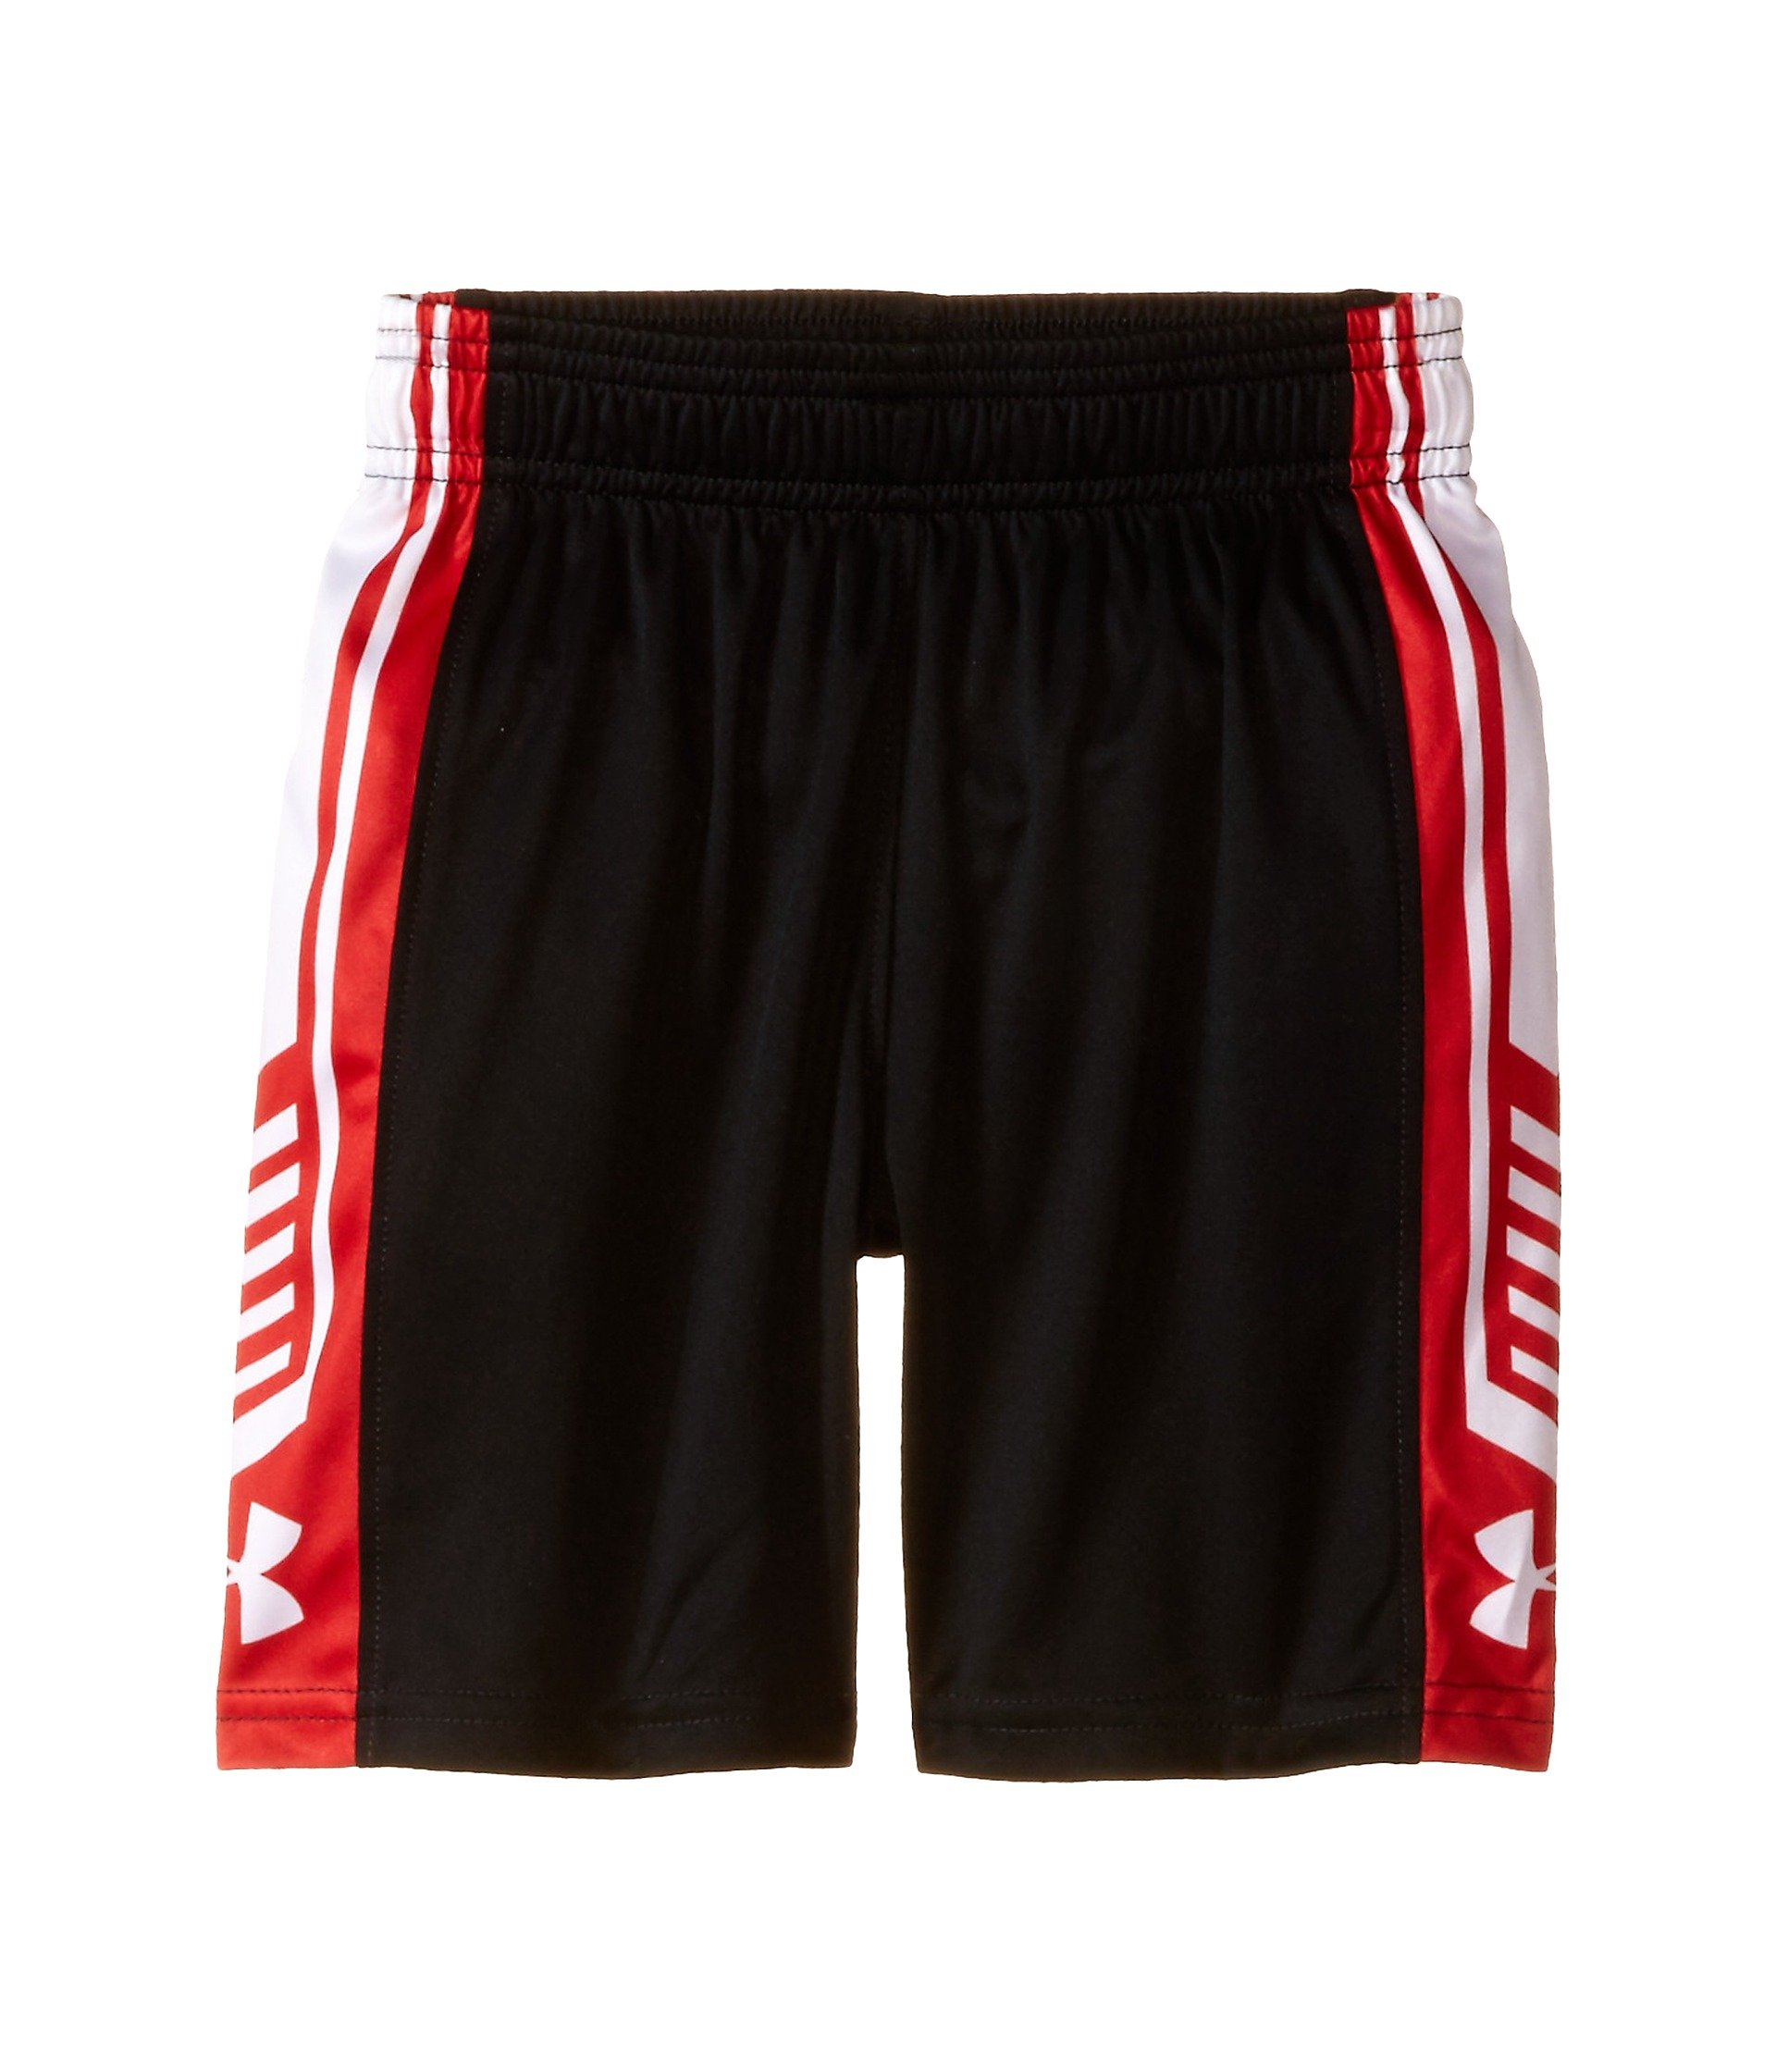 Under Armour Little Boys' Fade Out Short, Black, 6